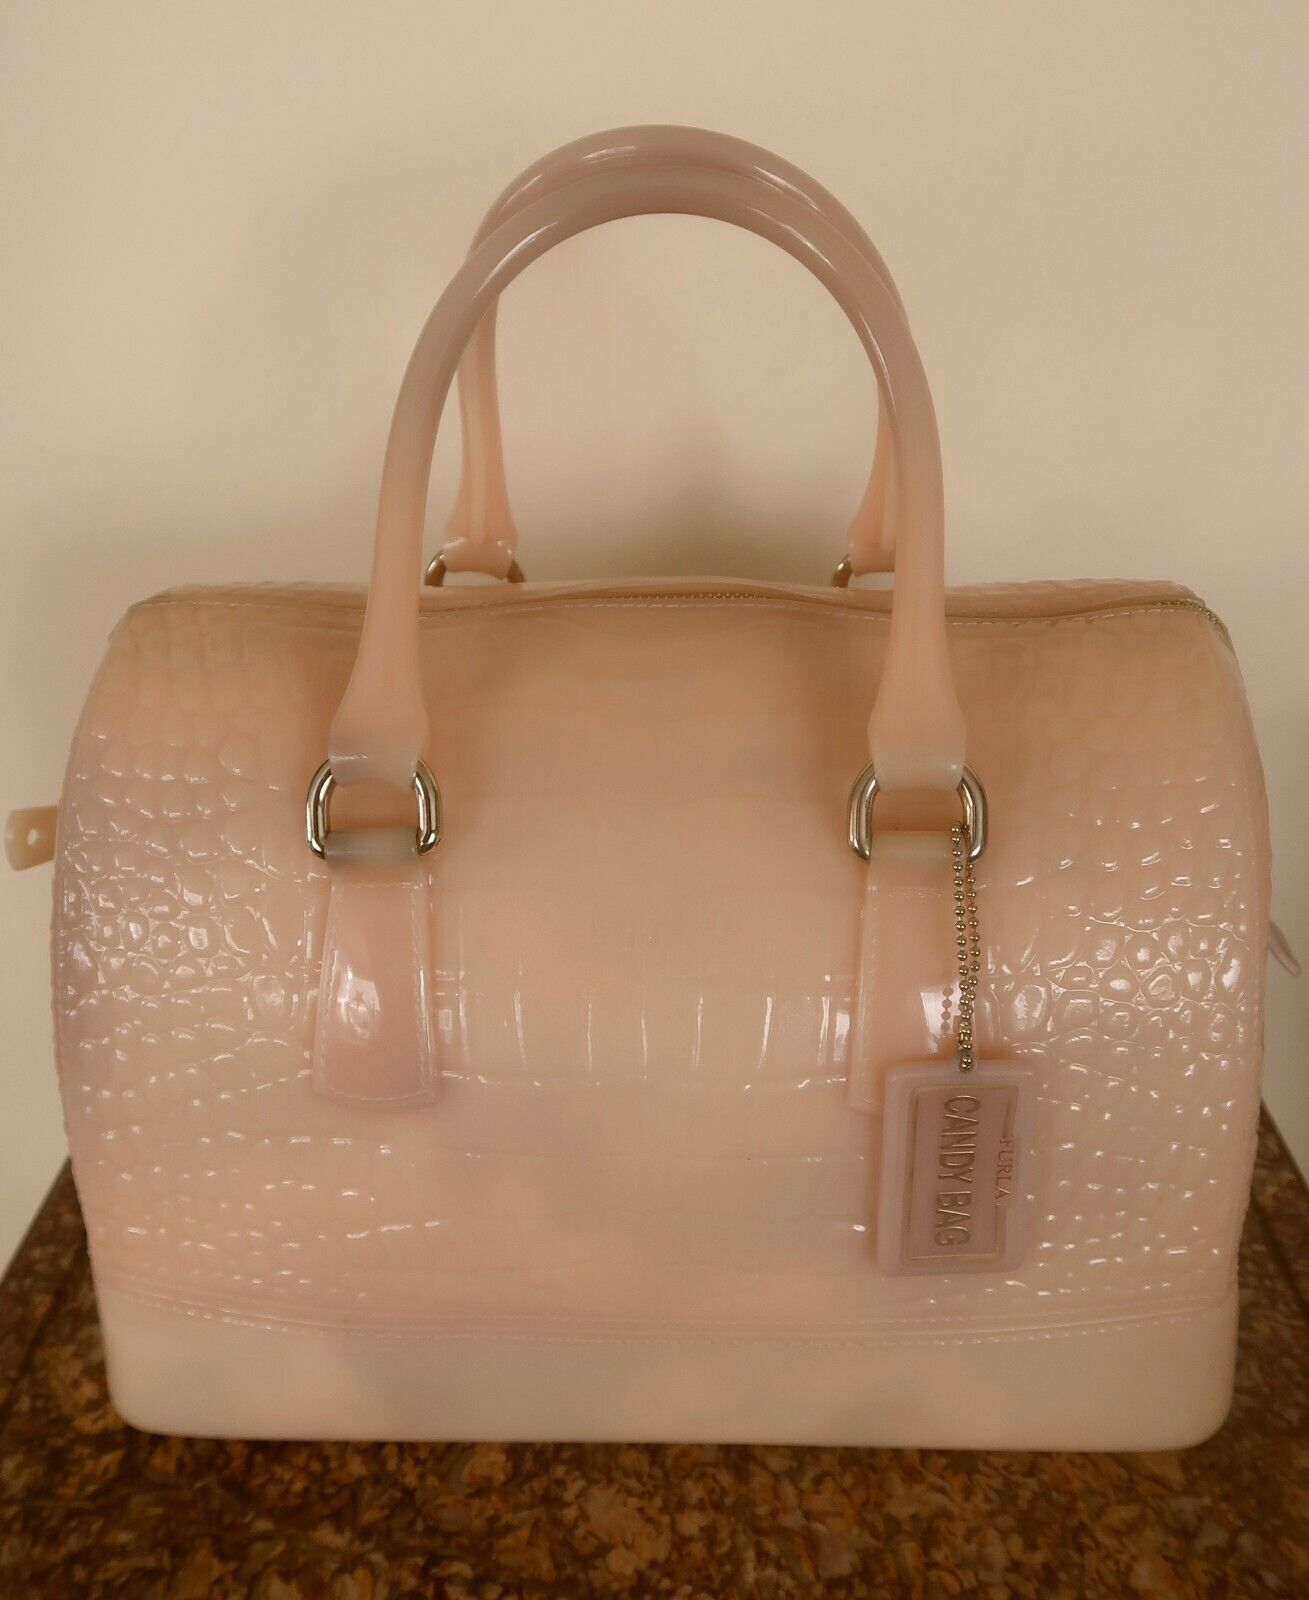 Sac candy bag *by furla boston *italy *rare *rose faÇon croco *new offer 150 €